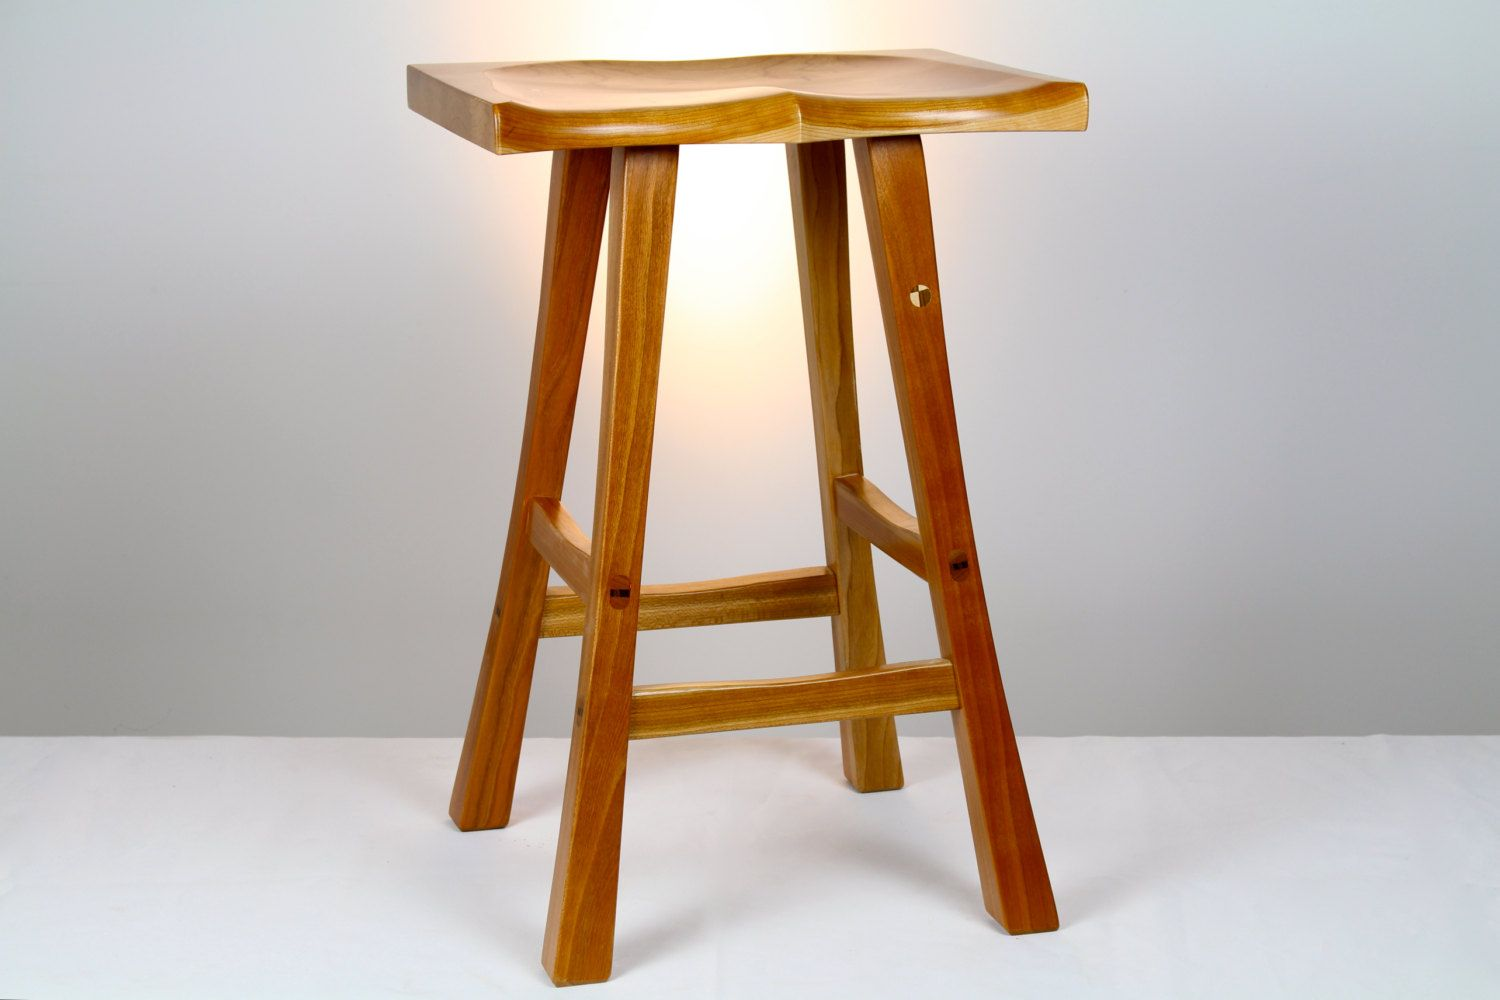 Stool wood stool kitchen stool chair solid cherry guaranteed